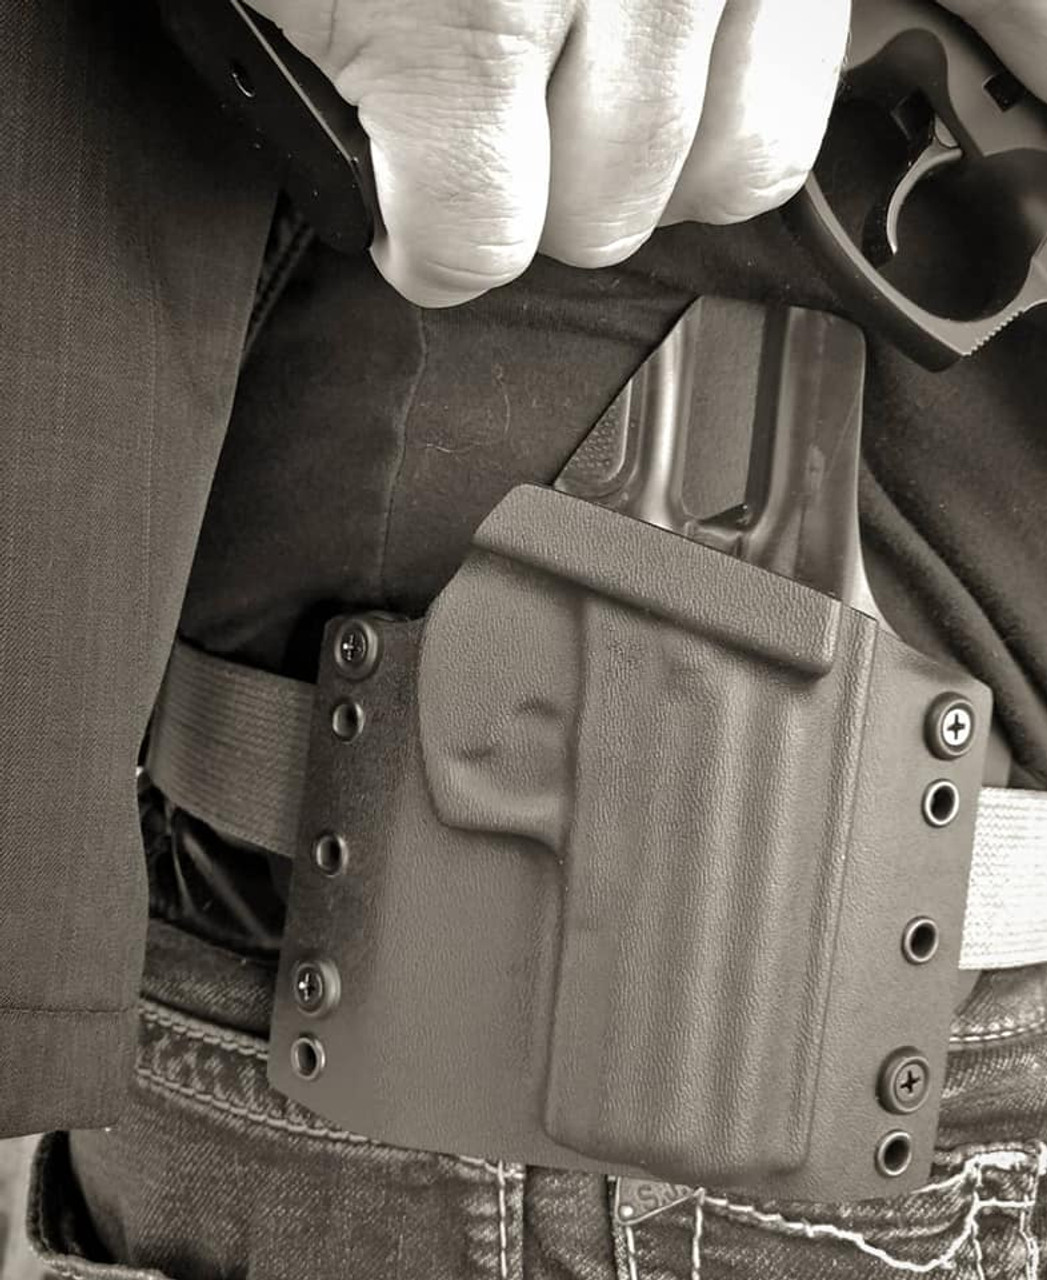 CZ P-01 Outside Waistband Kydex Holster